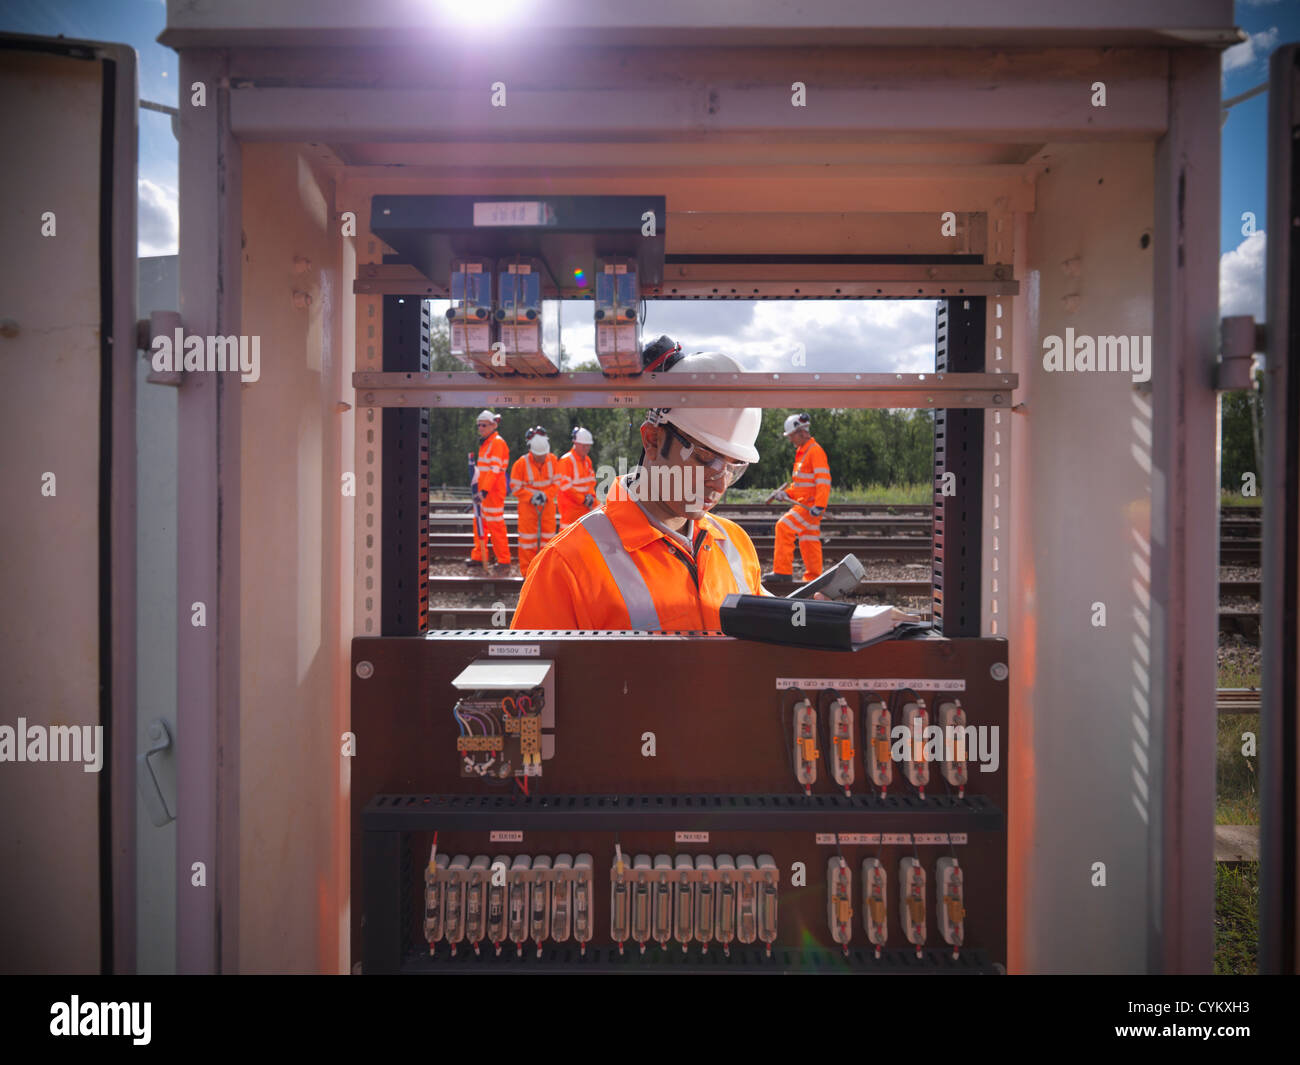 Railway worker at signal station - Stock Image